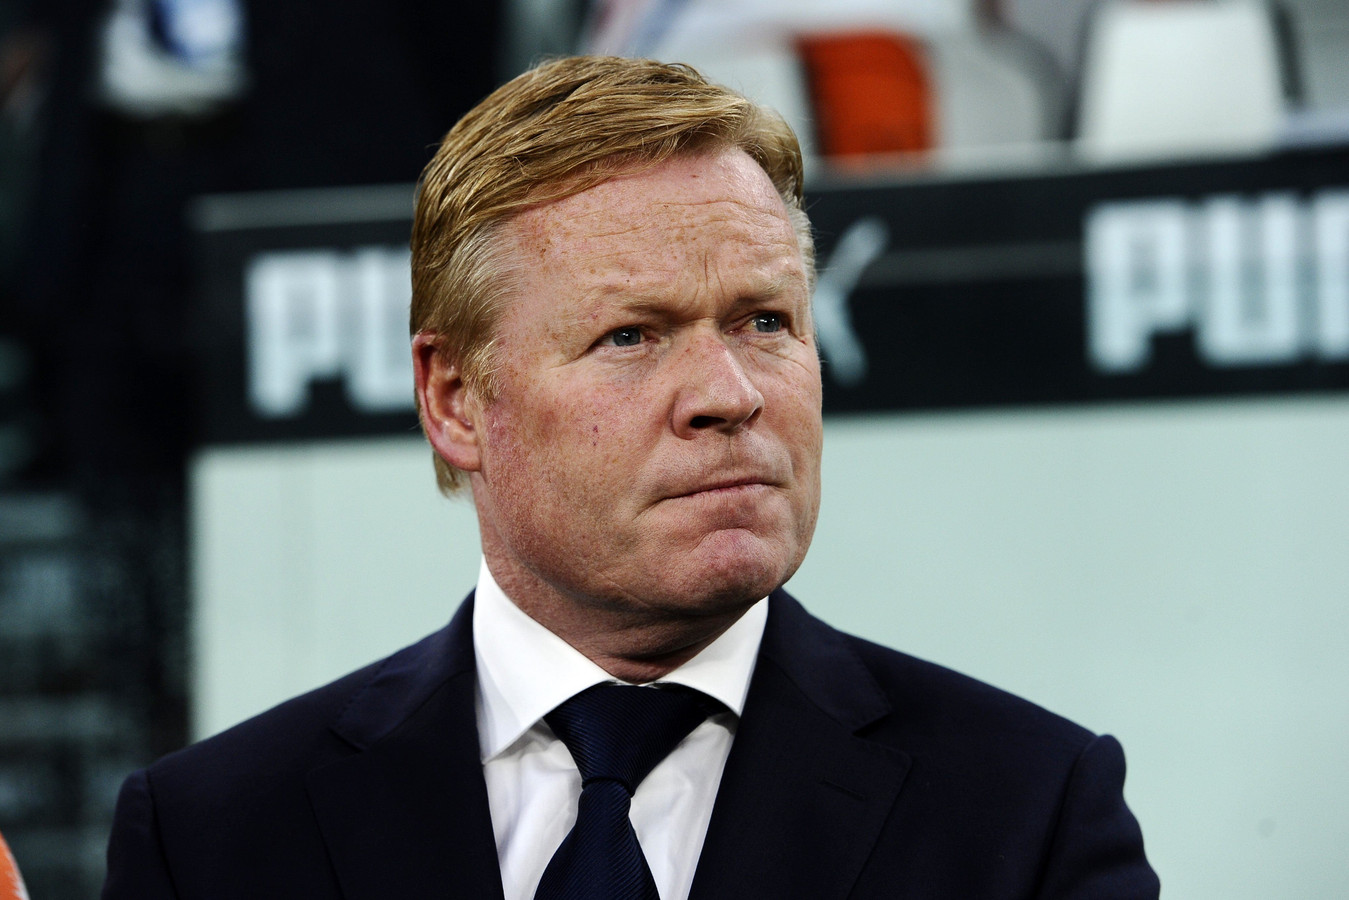 ronald koeman with 124852117 on Liverpool Forward Sadio Mane Reveals Why He Rejected Manchester United 1586730 further Nederlands Elftal also Jordan Pickford Everton Sunderland David Moyes Transfer News Rumours Gossip in addition Liverpool Fc Goalkeeper Simon Mignolet 9502271 further Moussa Sissoko Tottenham Reject Everton Transfer Premier League Newcastle.